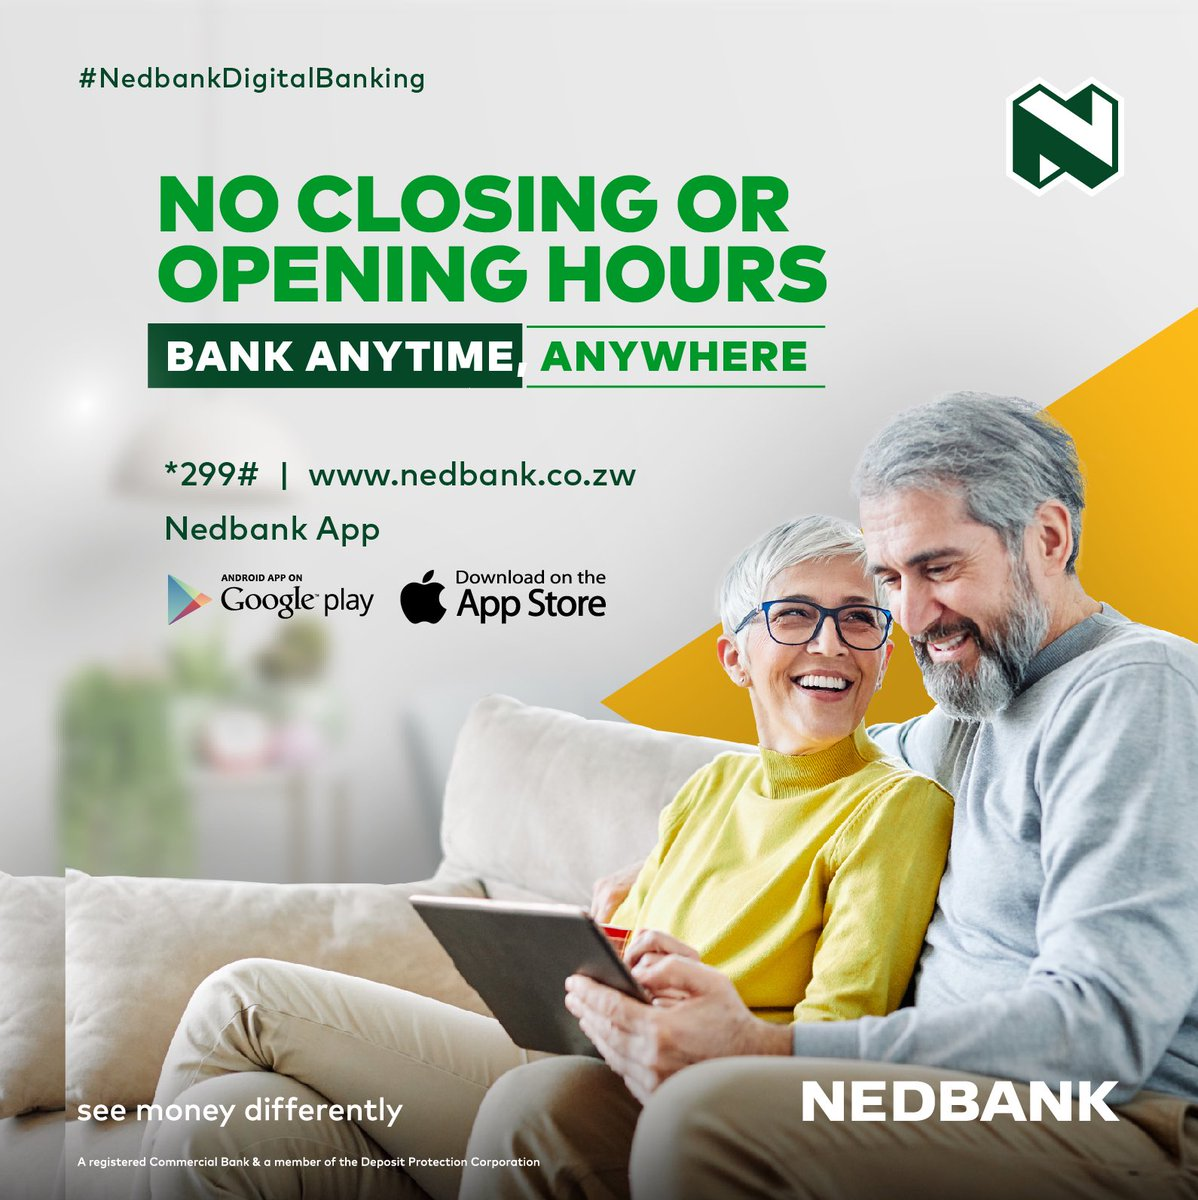 #BankFromHome through any of our digital platforms:  1. 📱 USSD code *299#  2.👩‍💻 Internet Banking  3. 📲 Mobile Banking App (Download on Google Play Store or App Store)  #Nedbank #DigitalBanking